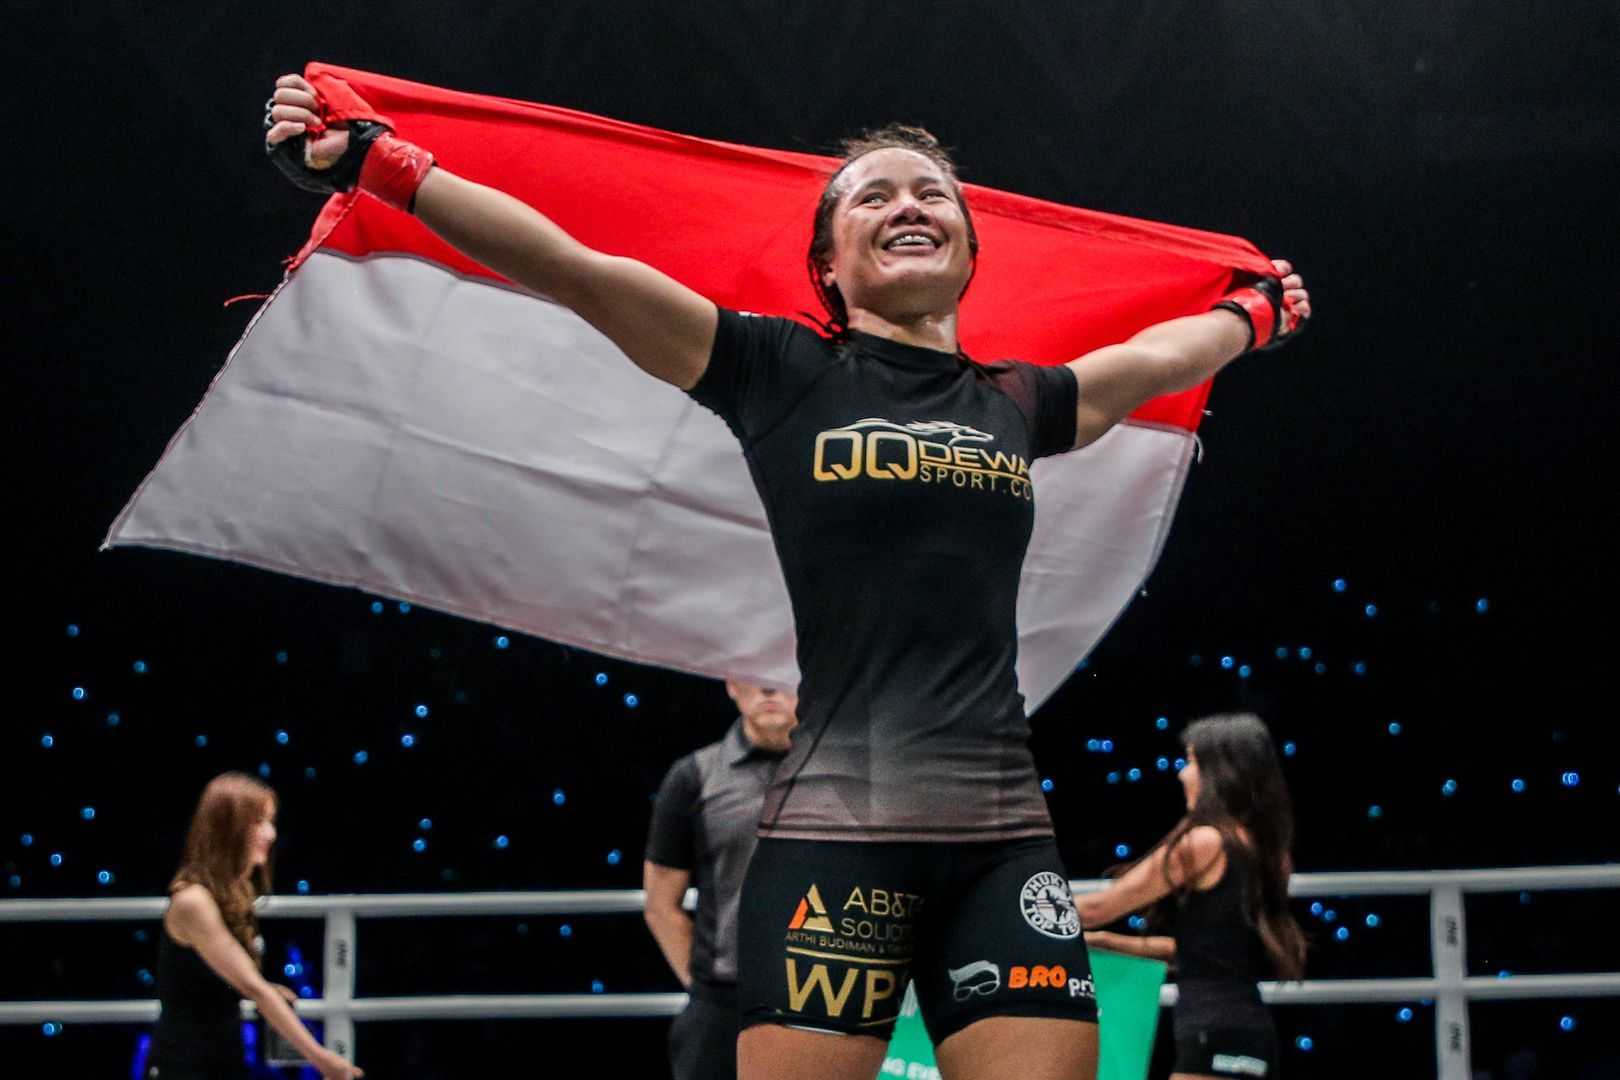 Priscilla Hertati Lumban Goal proudly raises the Indonesian flag